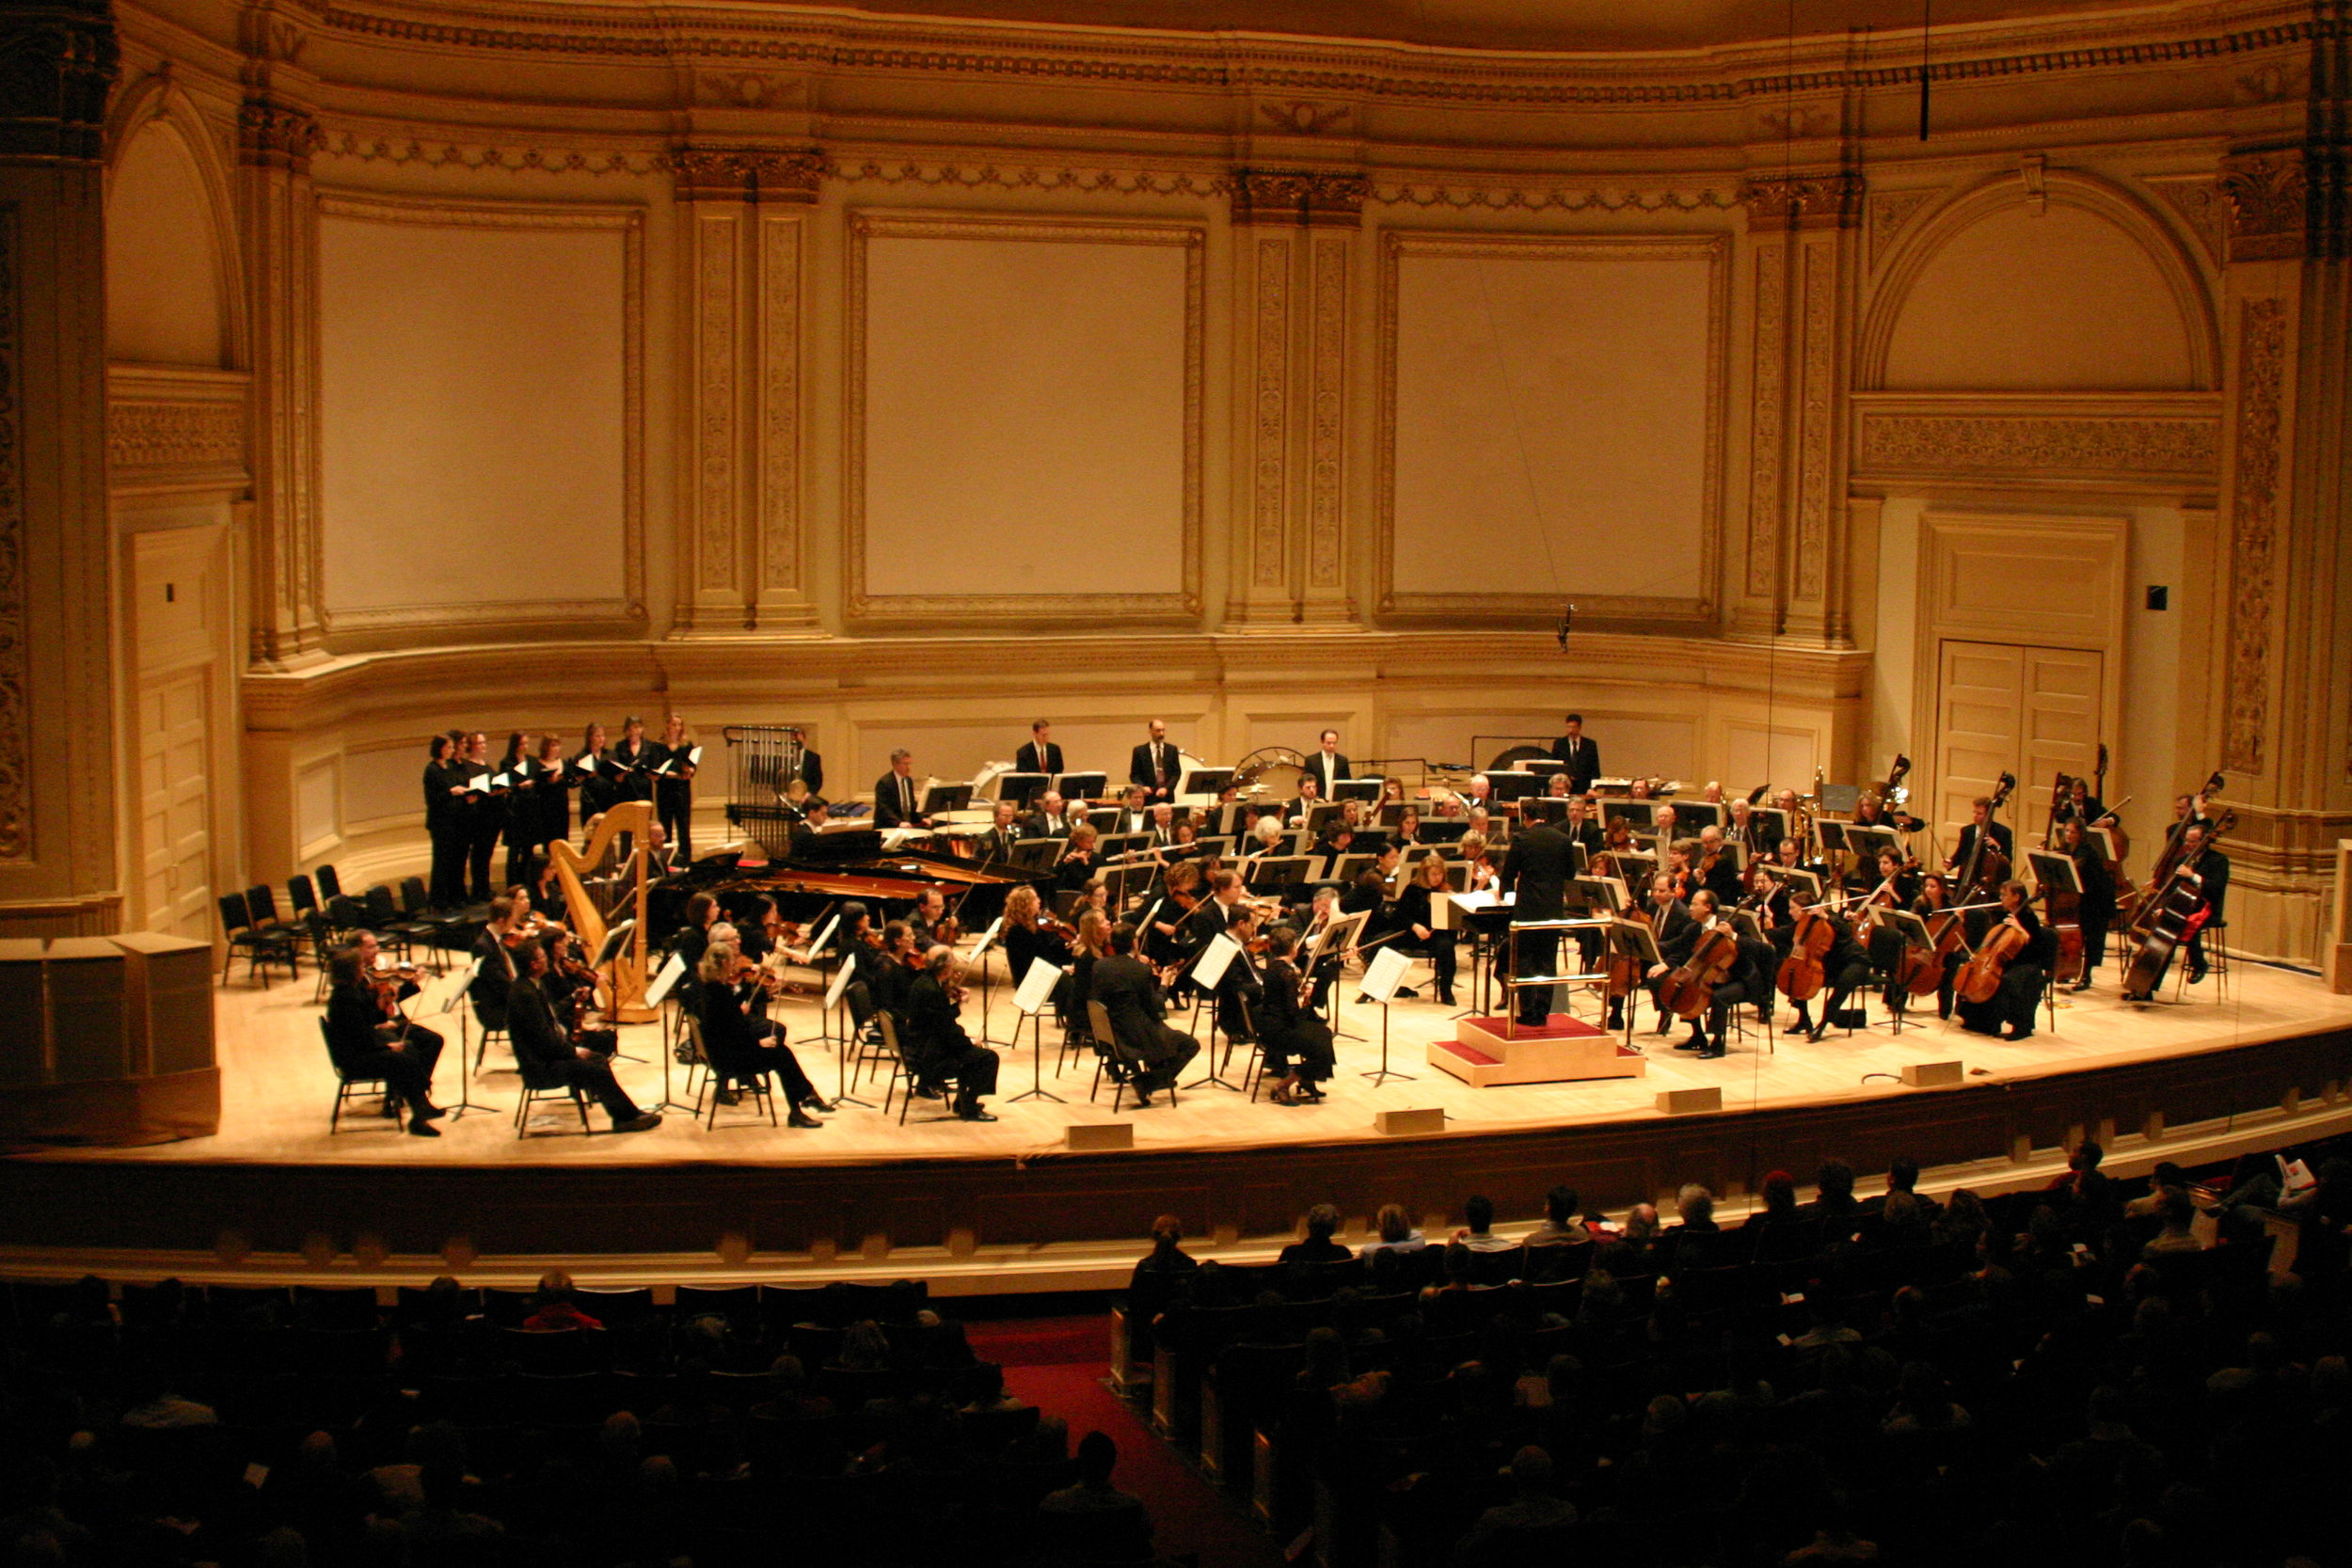 SERENADA SCHIZOPHRANA - Serenada Schizophrana premiered at Carnegie Hall, NYC and was commissioned and performed by the American Composers Orchestra on February 23rd 2005, Conducted by Stephen Sloane. It was later re-recorded and released by Sony Classical on Oct. 3rd 2006, with John Mauceri Conducting the Hollywood Studio Symphony.